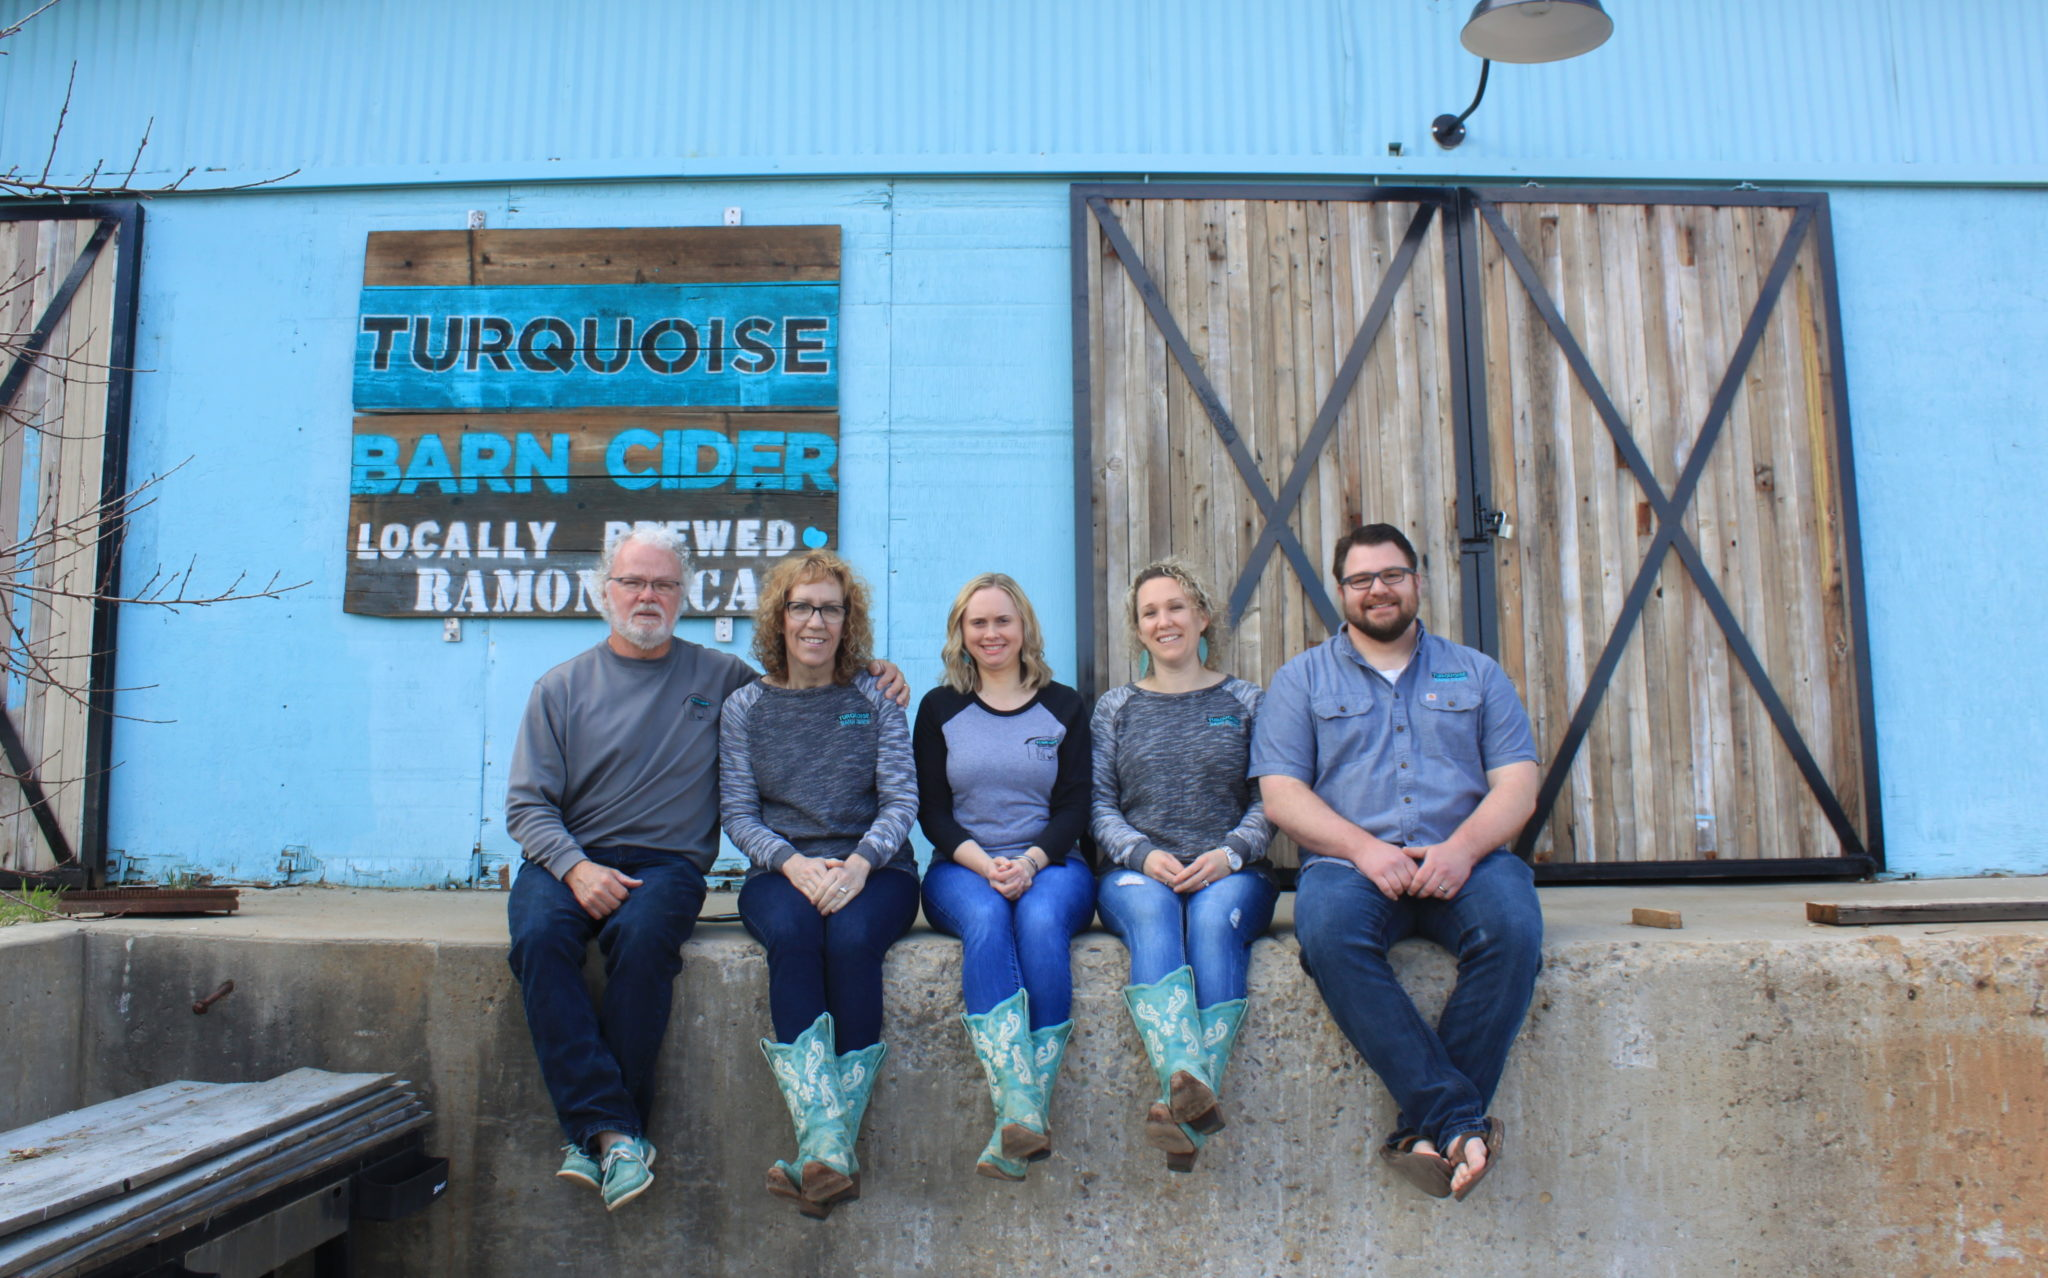 Turquoise Barn Cider Team Photo